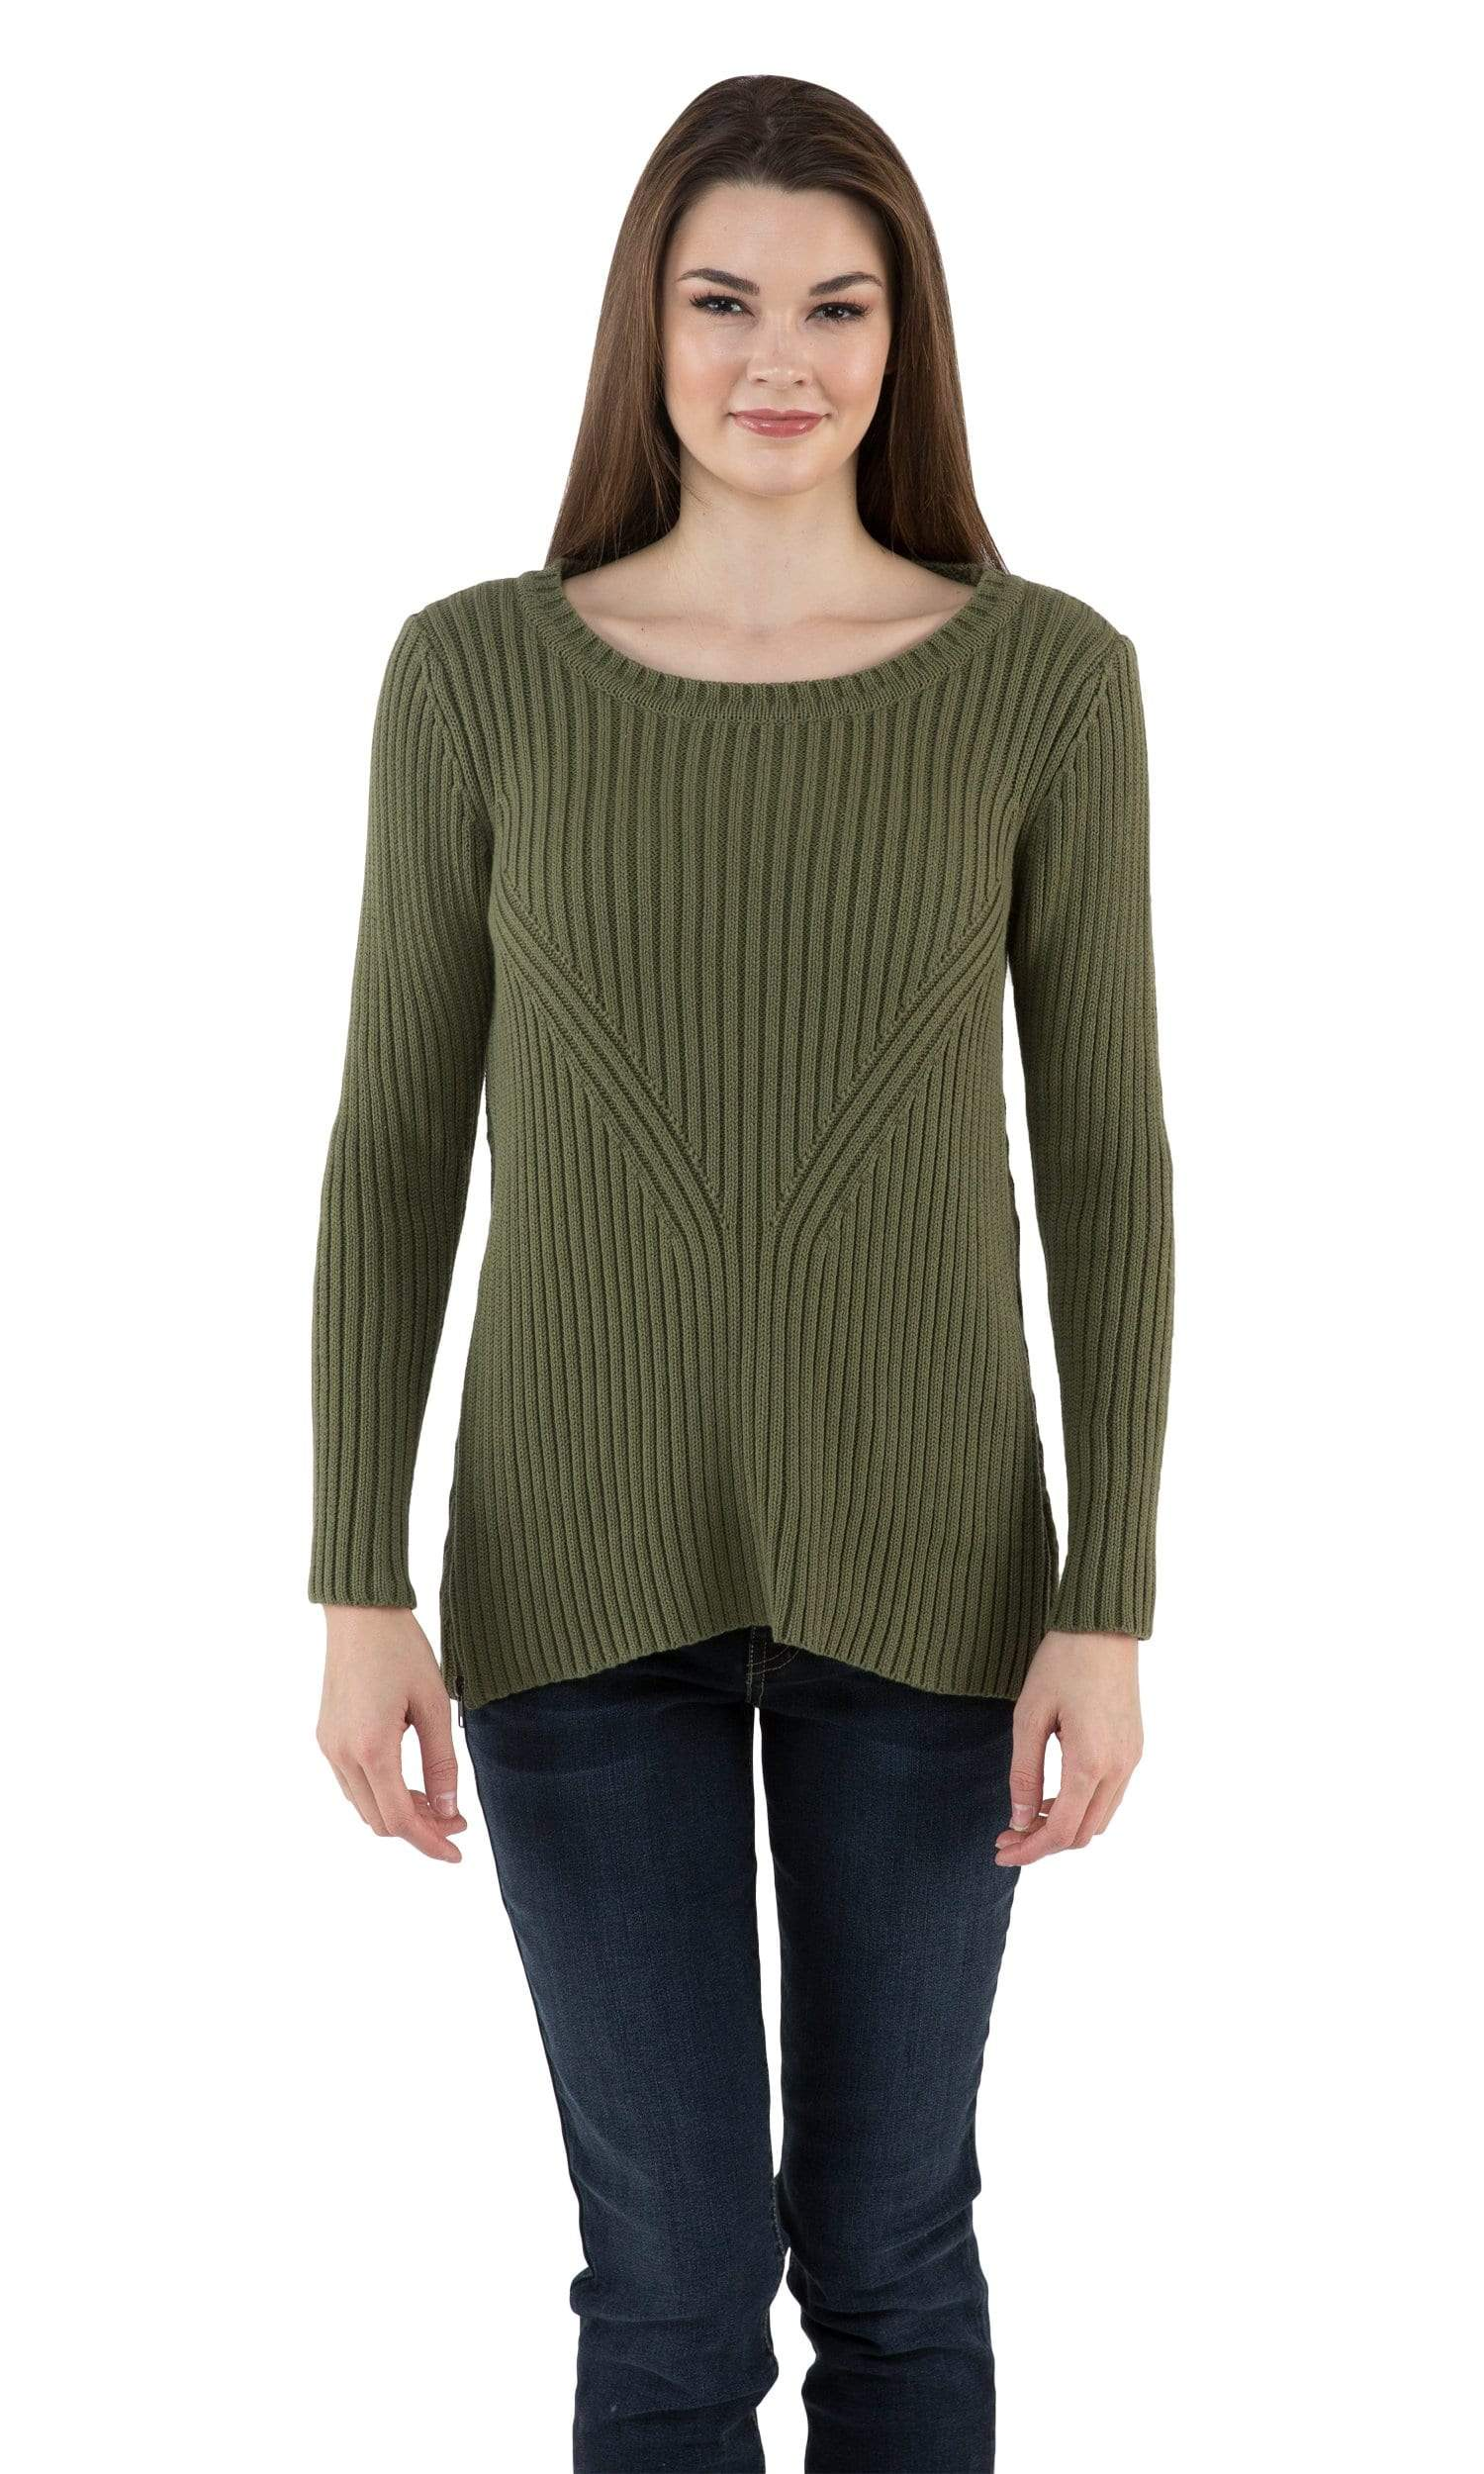 Sogi Engineered Rib Crewneck Sweater